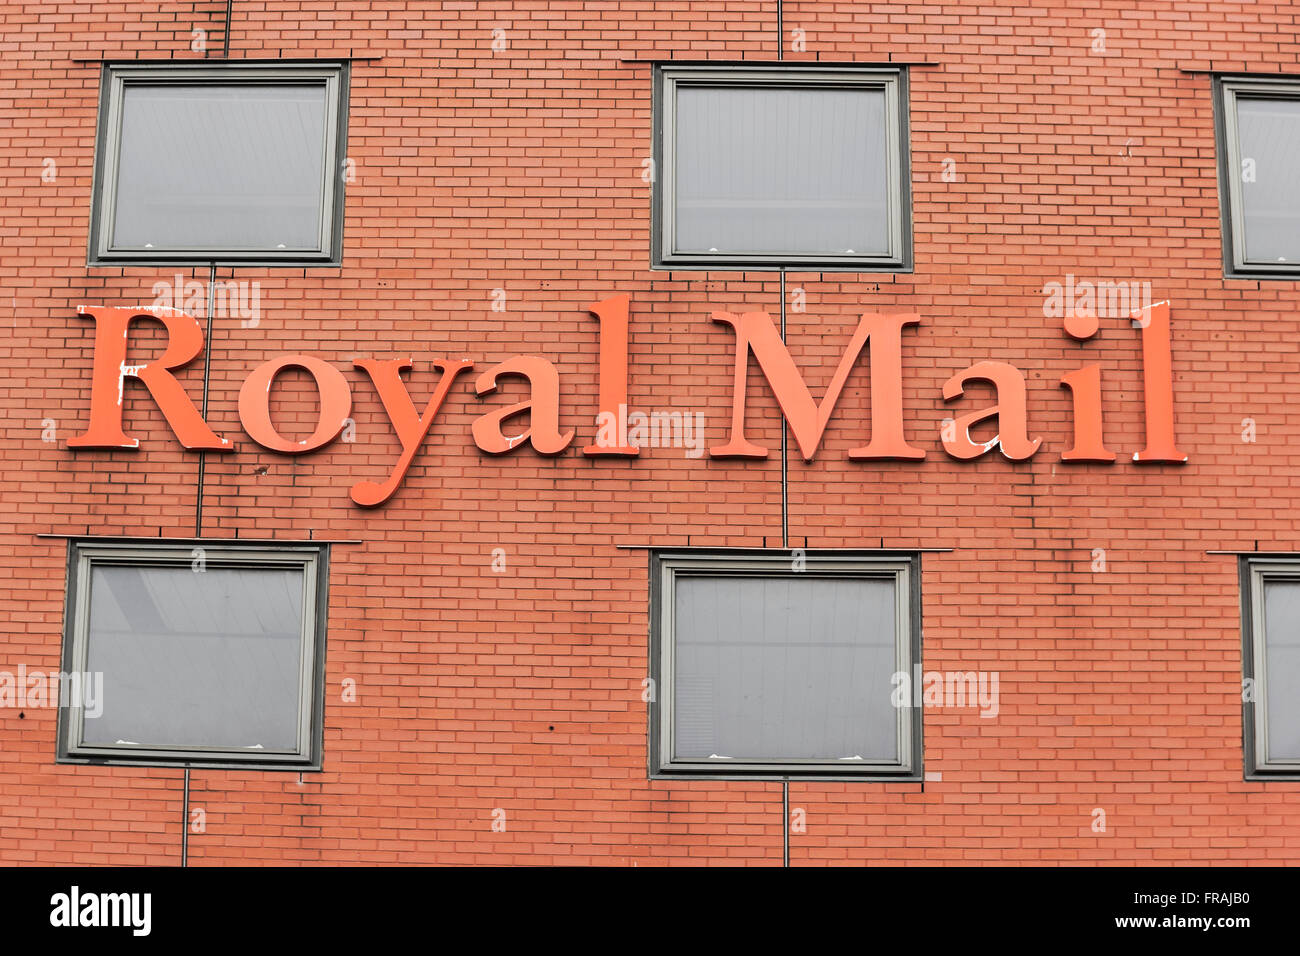 Royal mail sign on a red brick building. - Stock Image